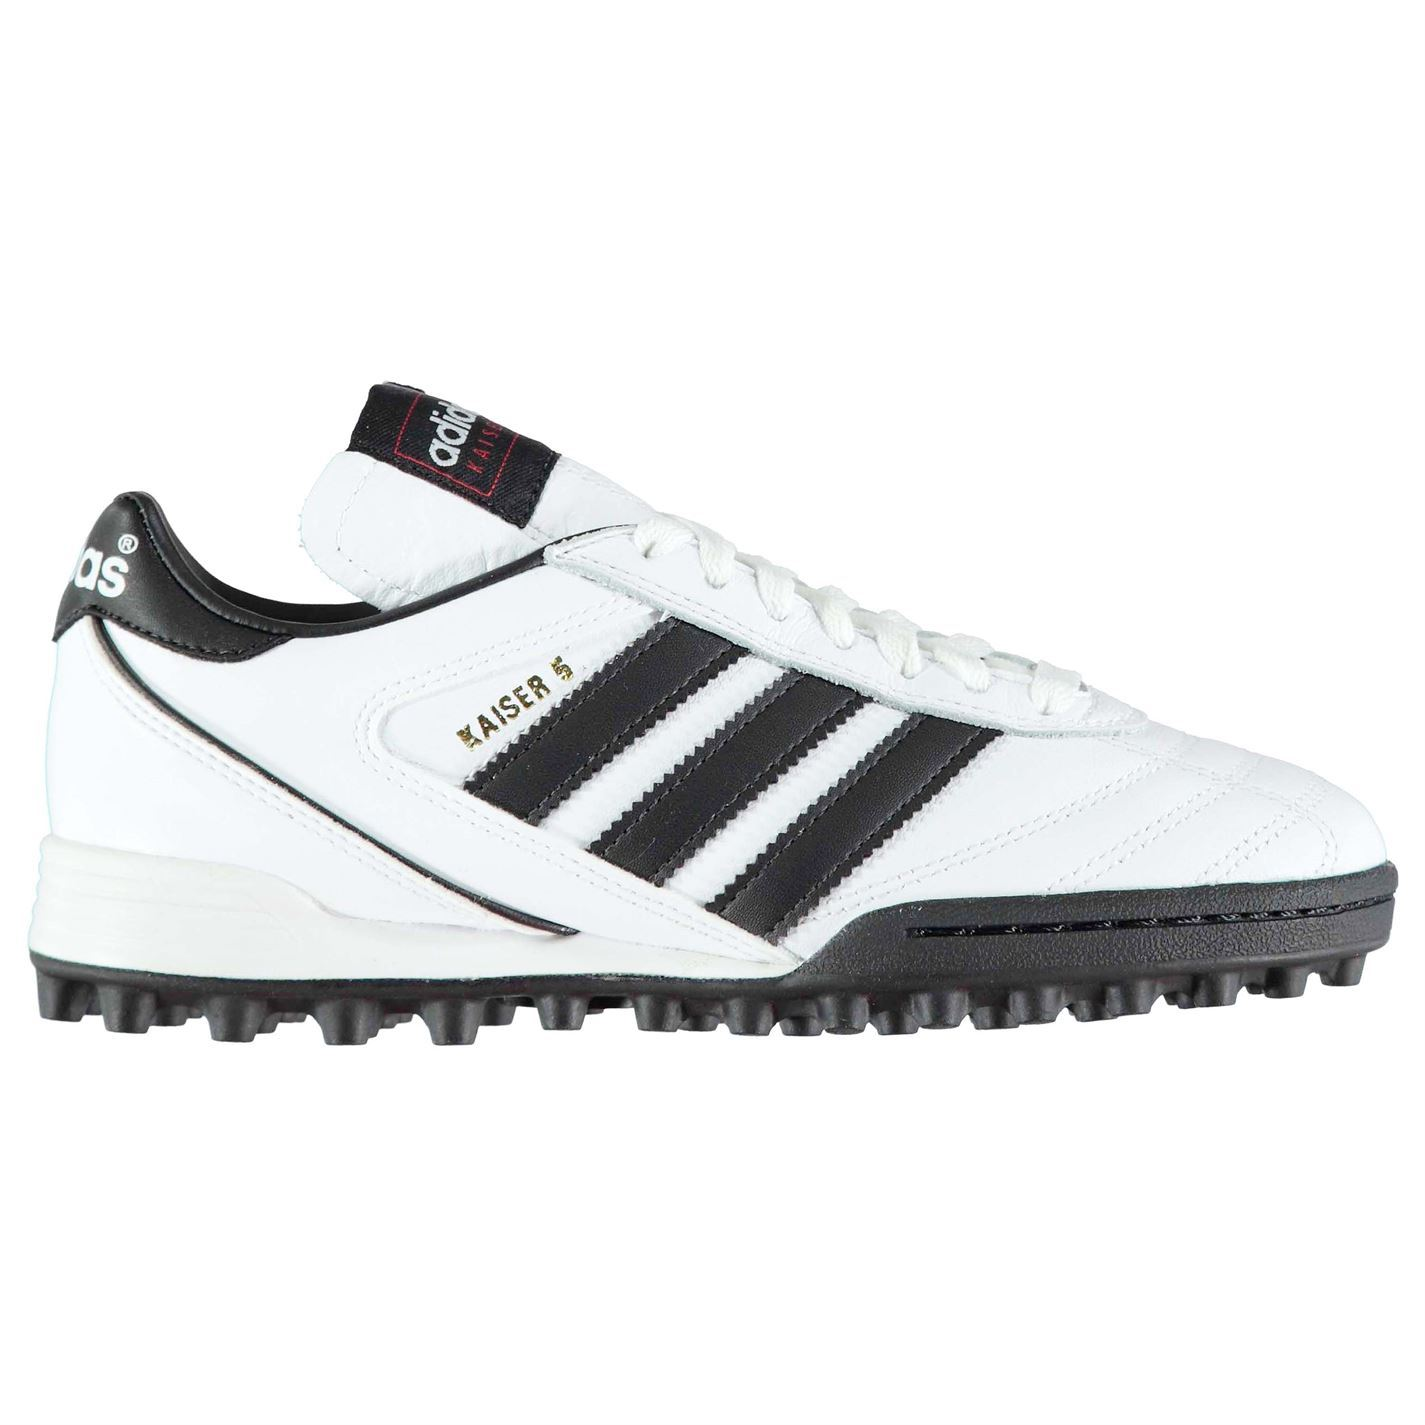 adidas kids kaiser 5 junior astro turf football boots trainers lace up shoes ebay. Black Bedroom Furniture Sets. Home Design Ideas